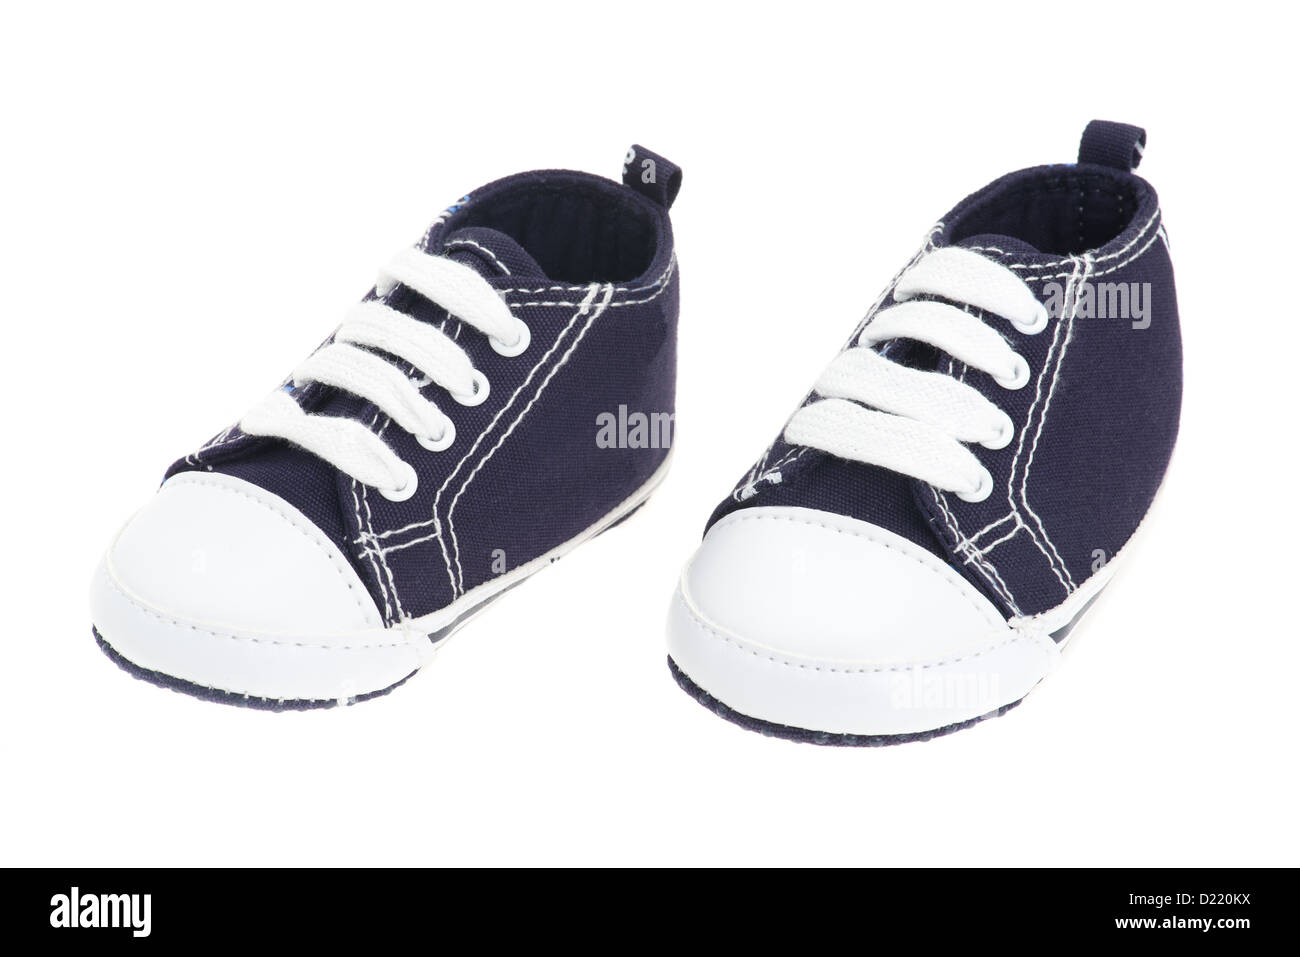 Little boys blue denim baby shoes - studio shot with a white background - Stock Image